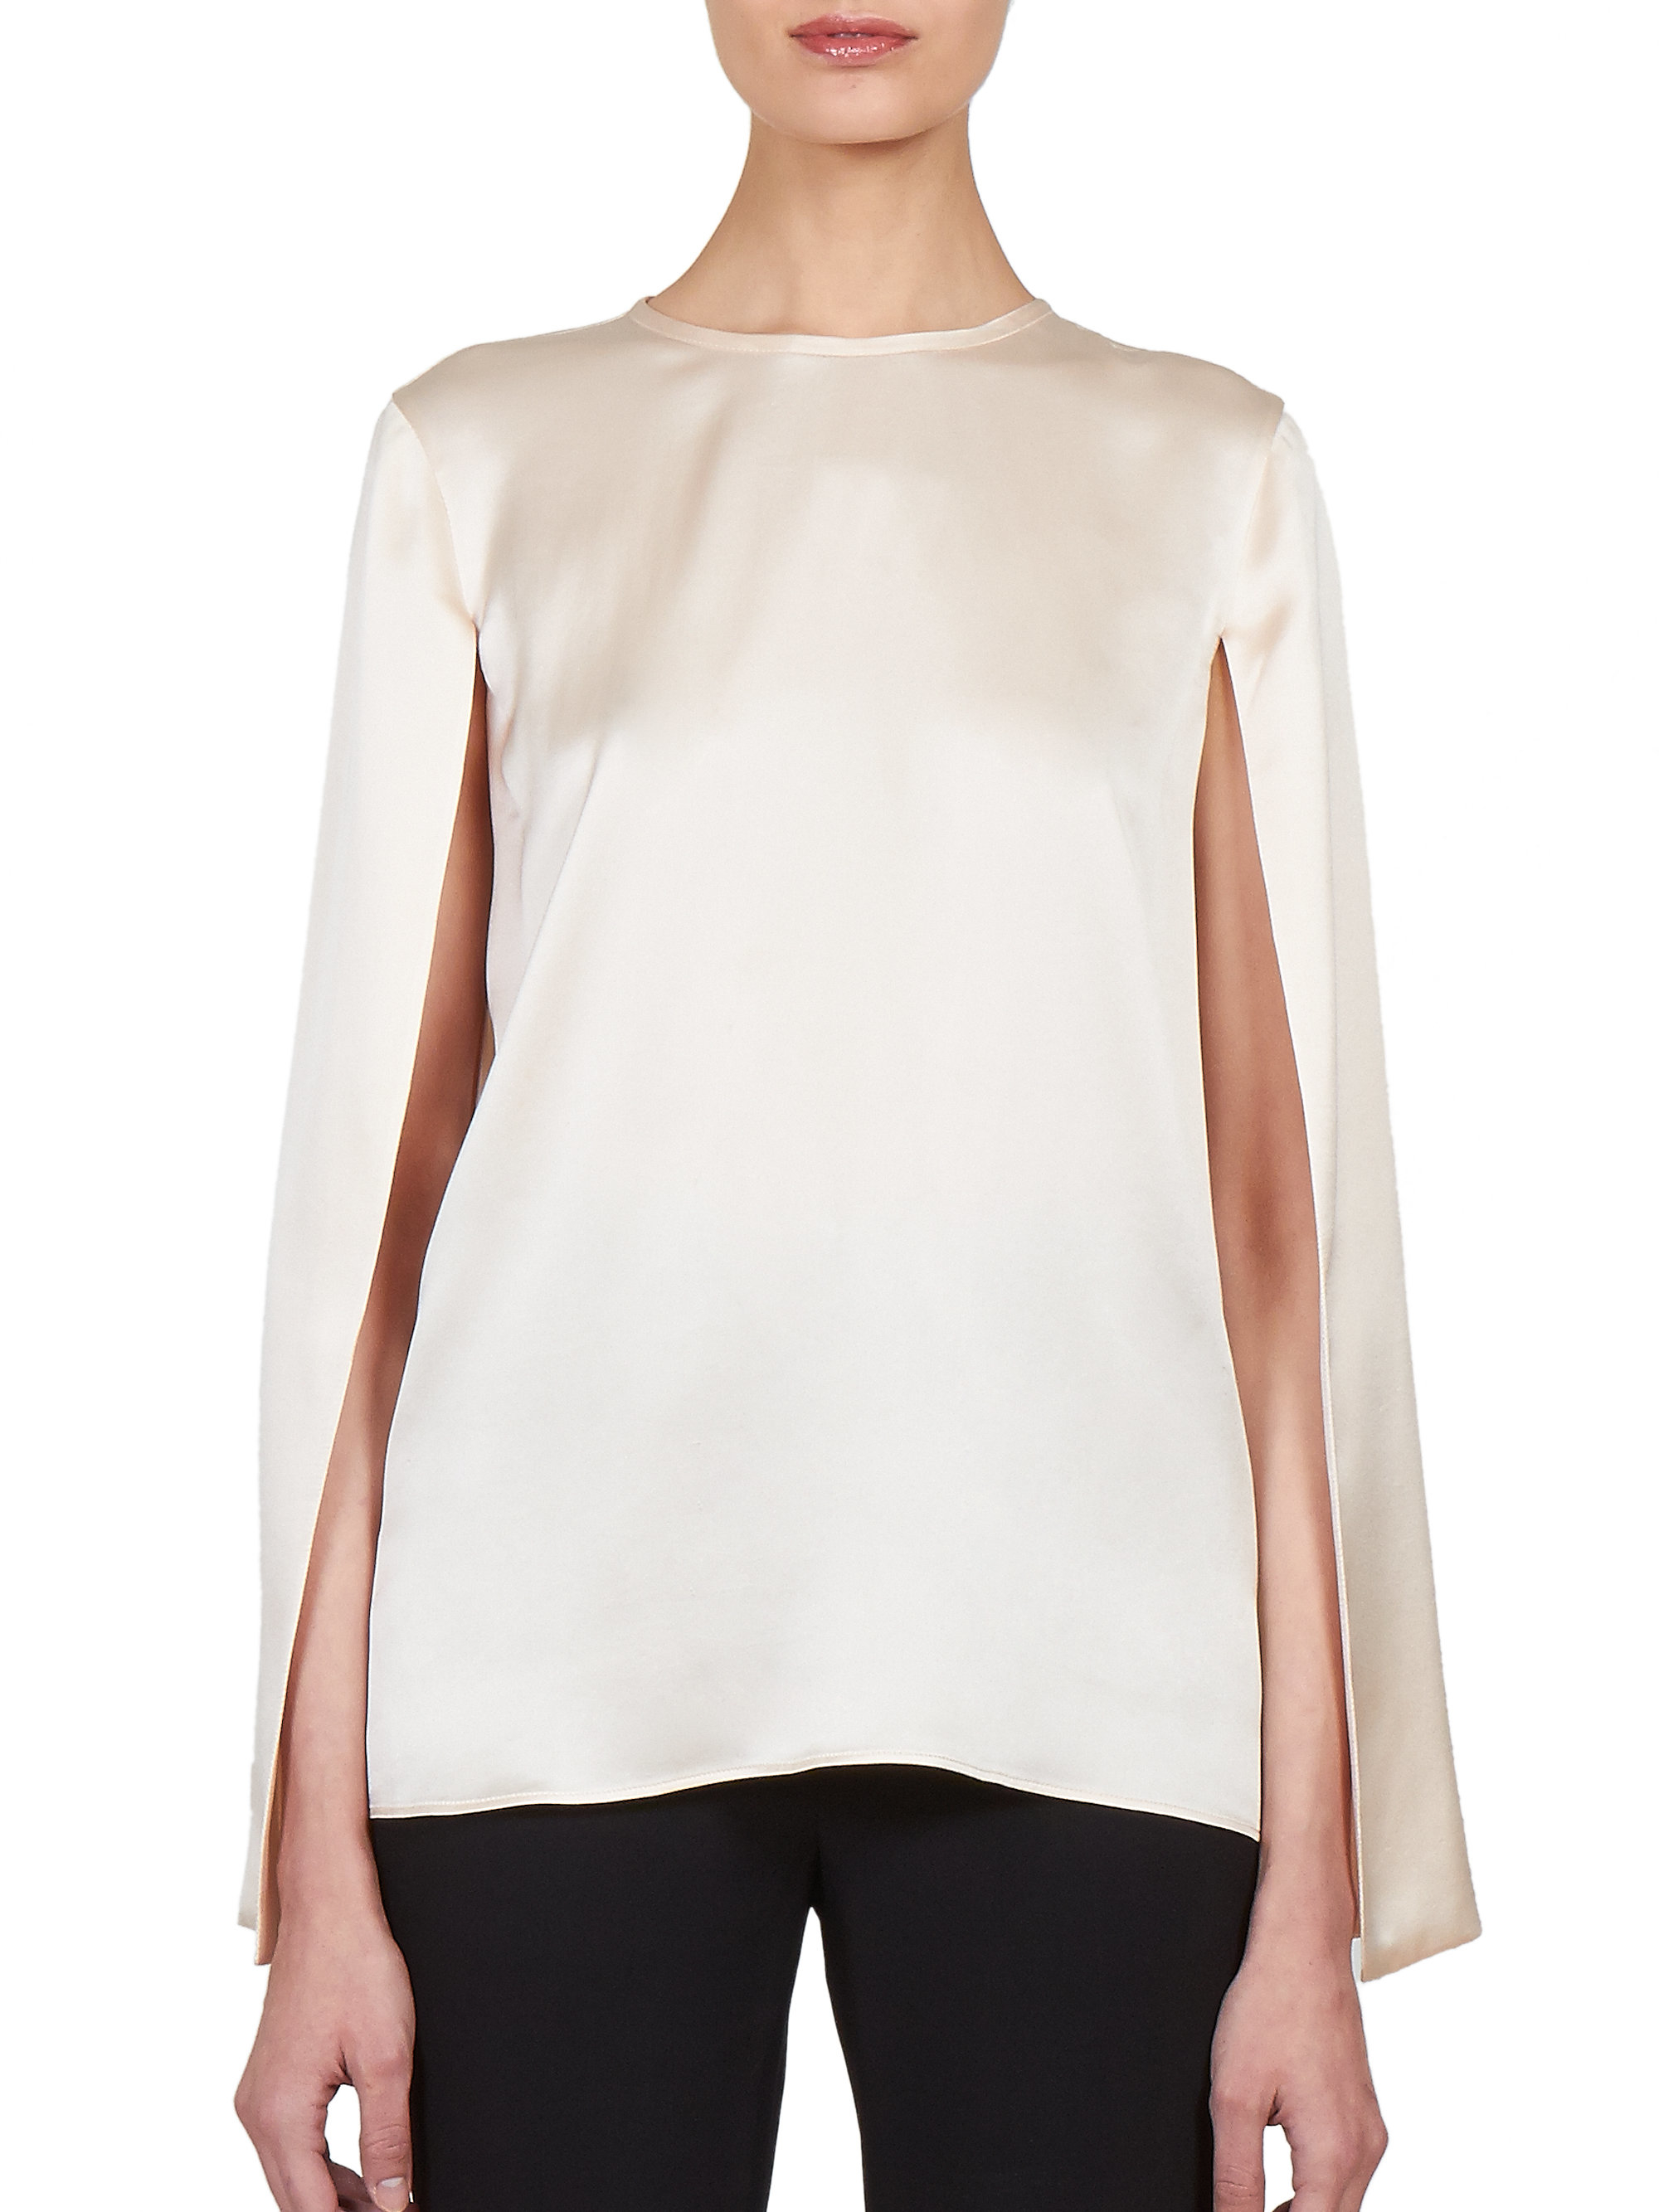 Sale Online Shopping Womens Colorblocked Silk Blouse Givenchy Clearance Affordable RhwjLD